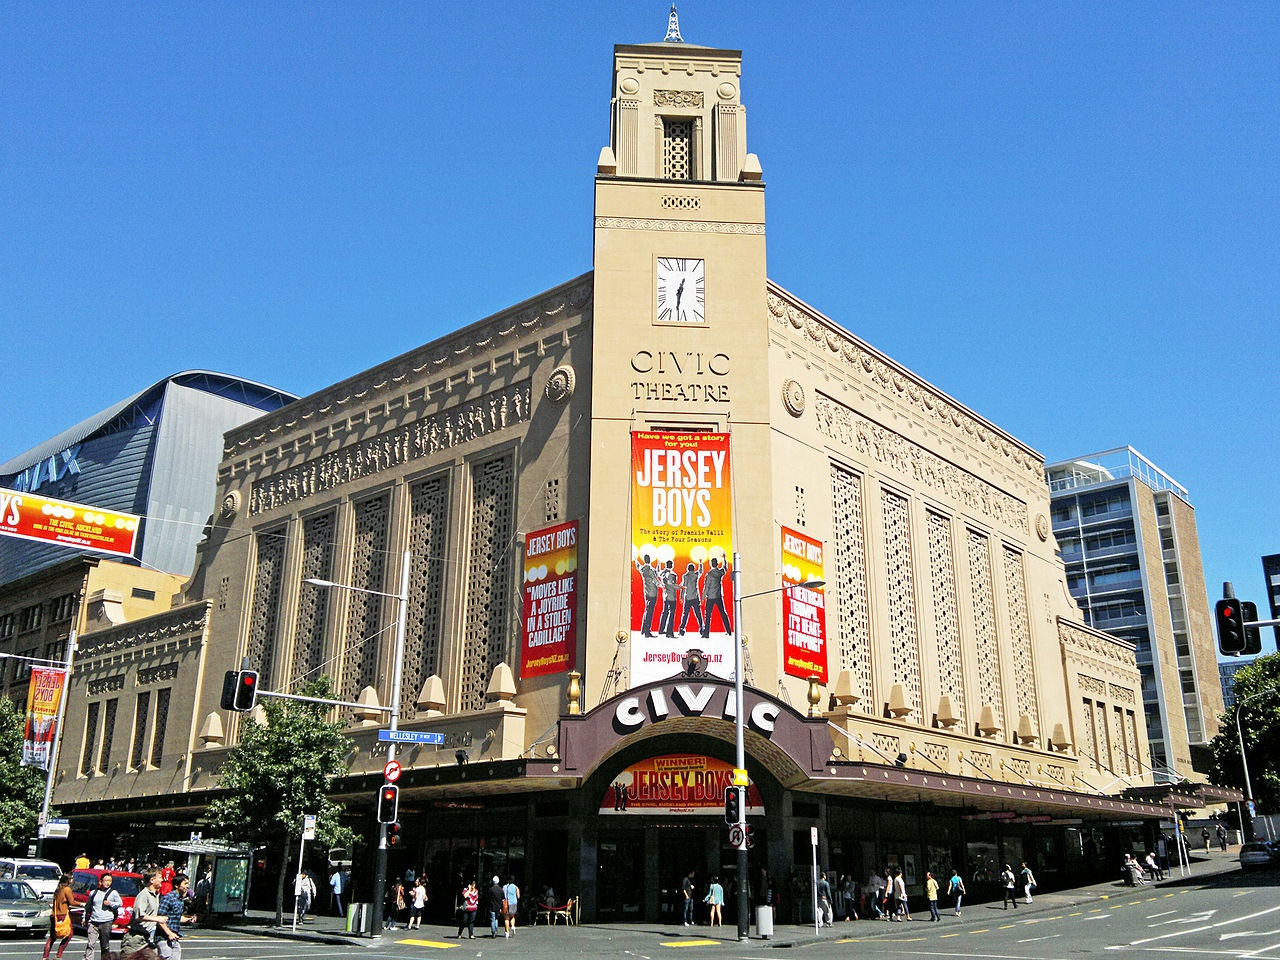 The Civic Auckland City